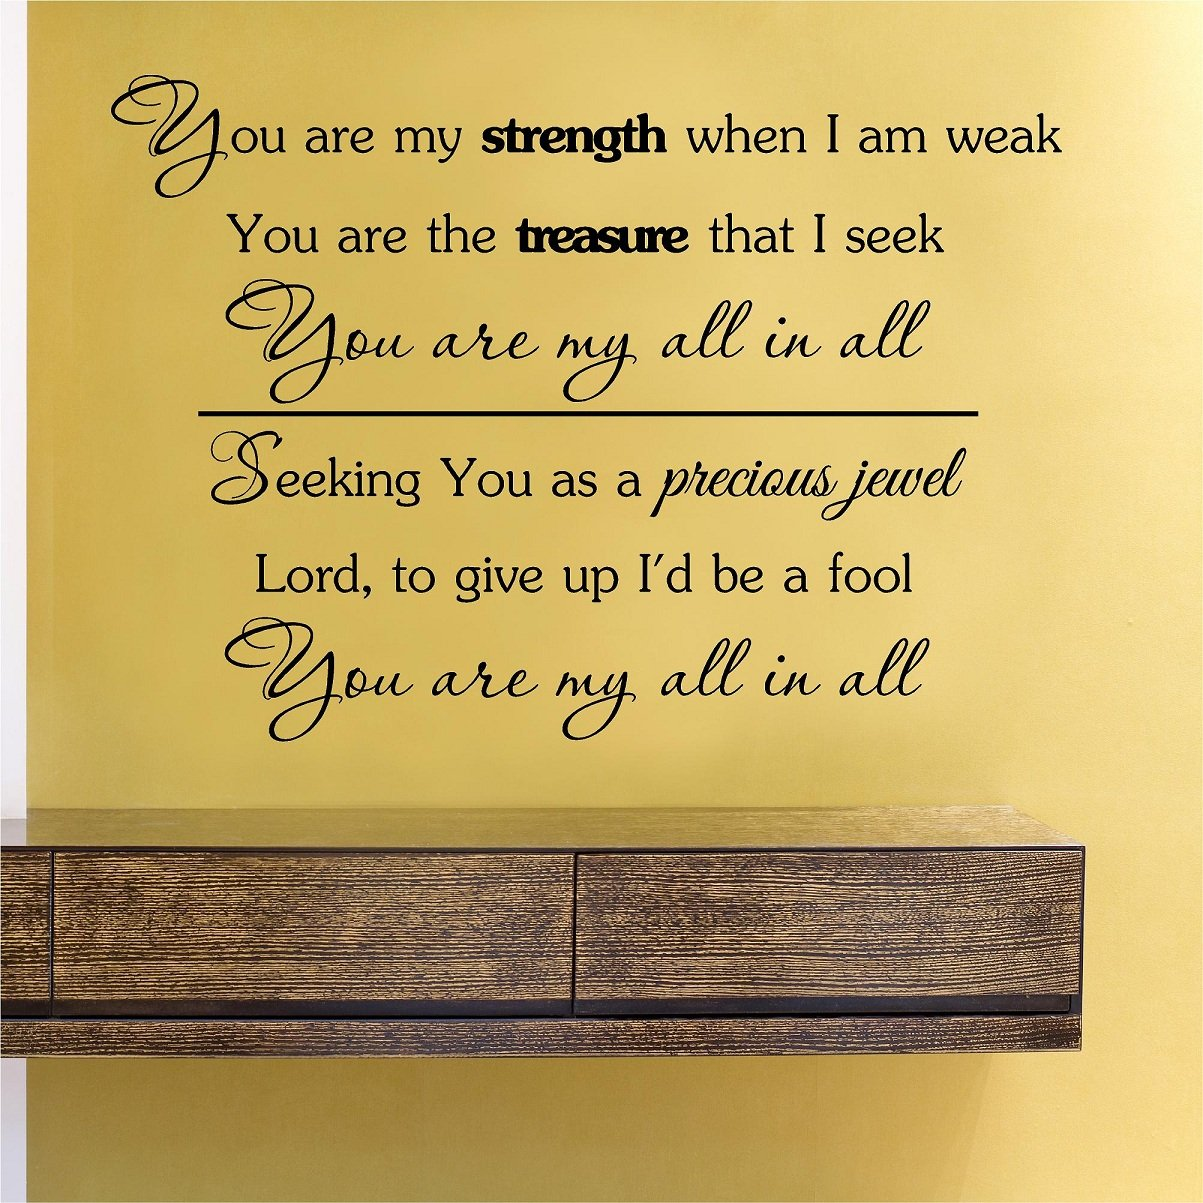 Amazoncom You Are My Strength When I Am Weak You Are The Treasure